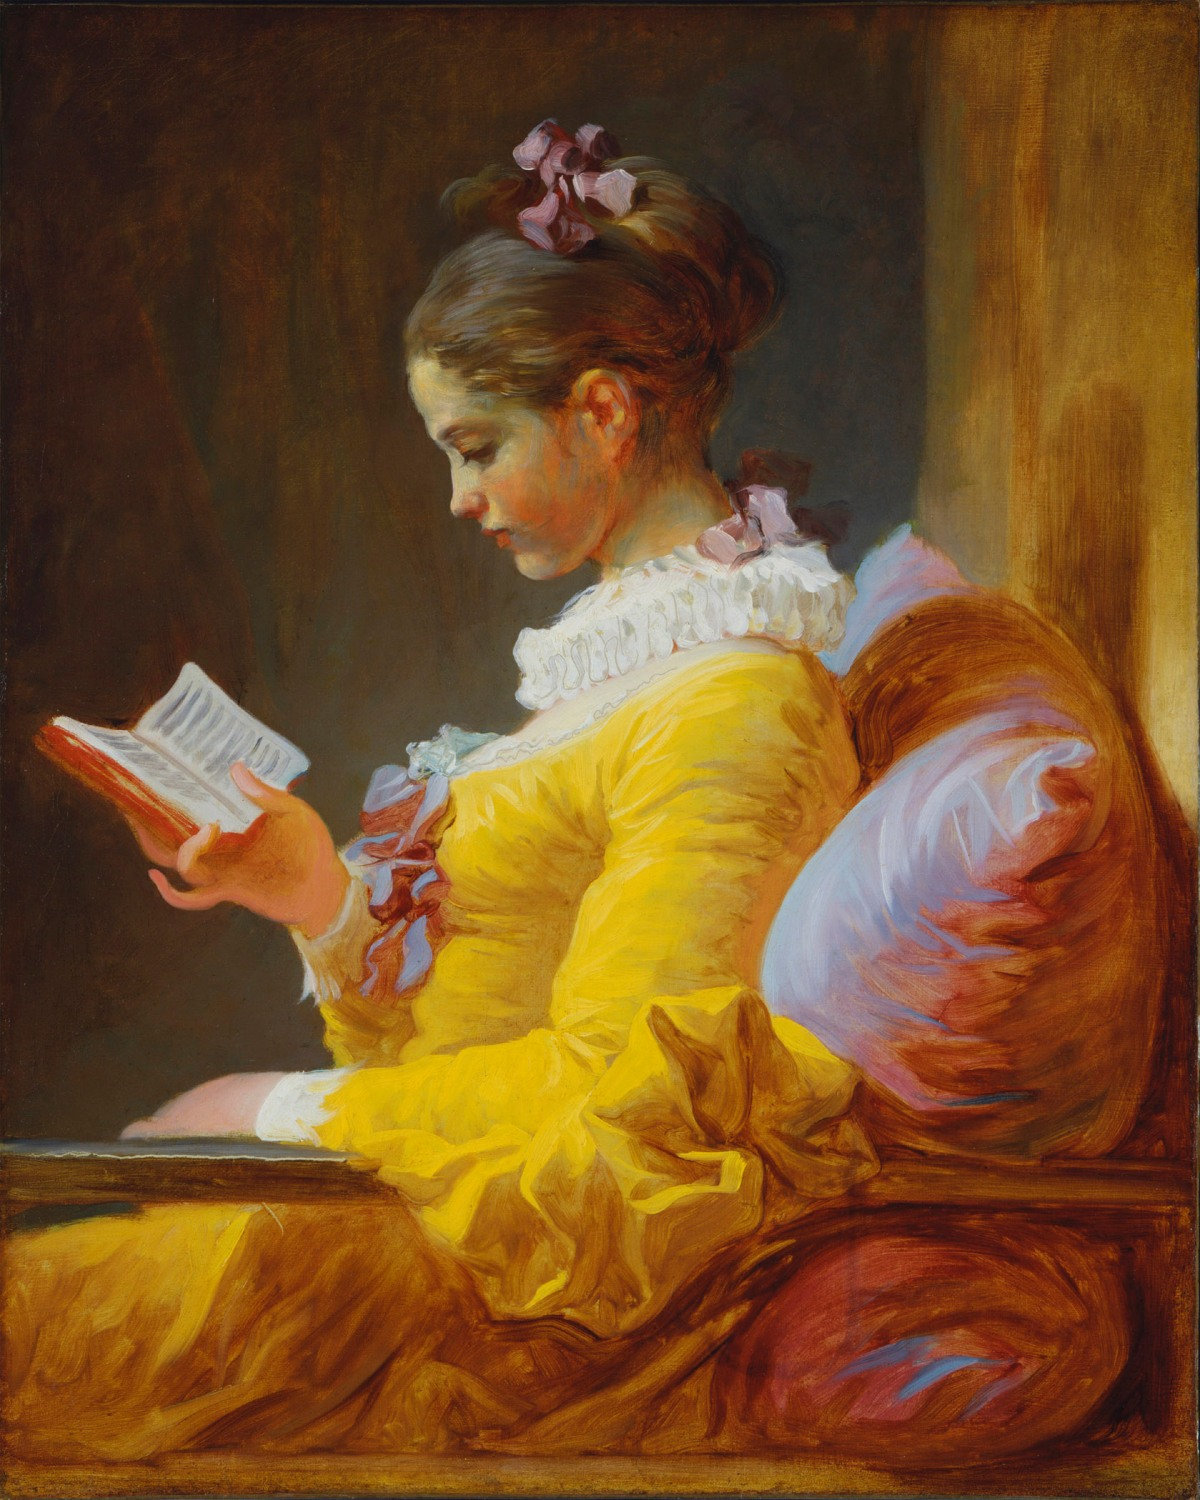 http://www.mountainlivingblogs.com/wp-content/uploads/image/A%20Young%20Girl%20Reading-JH%20Fragonard-DC.jpg